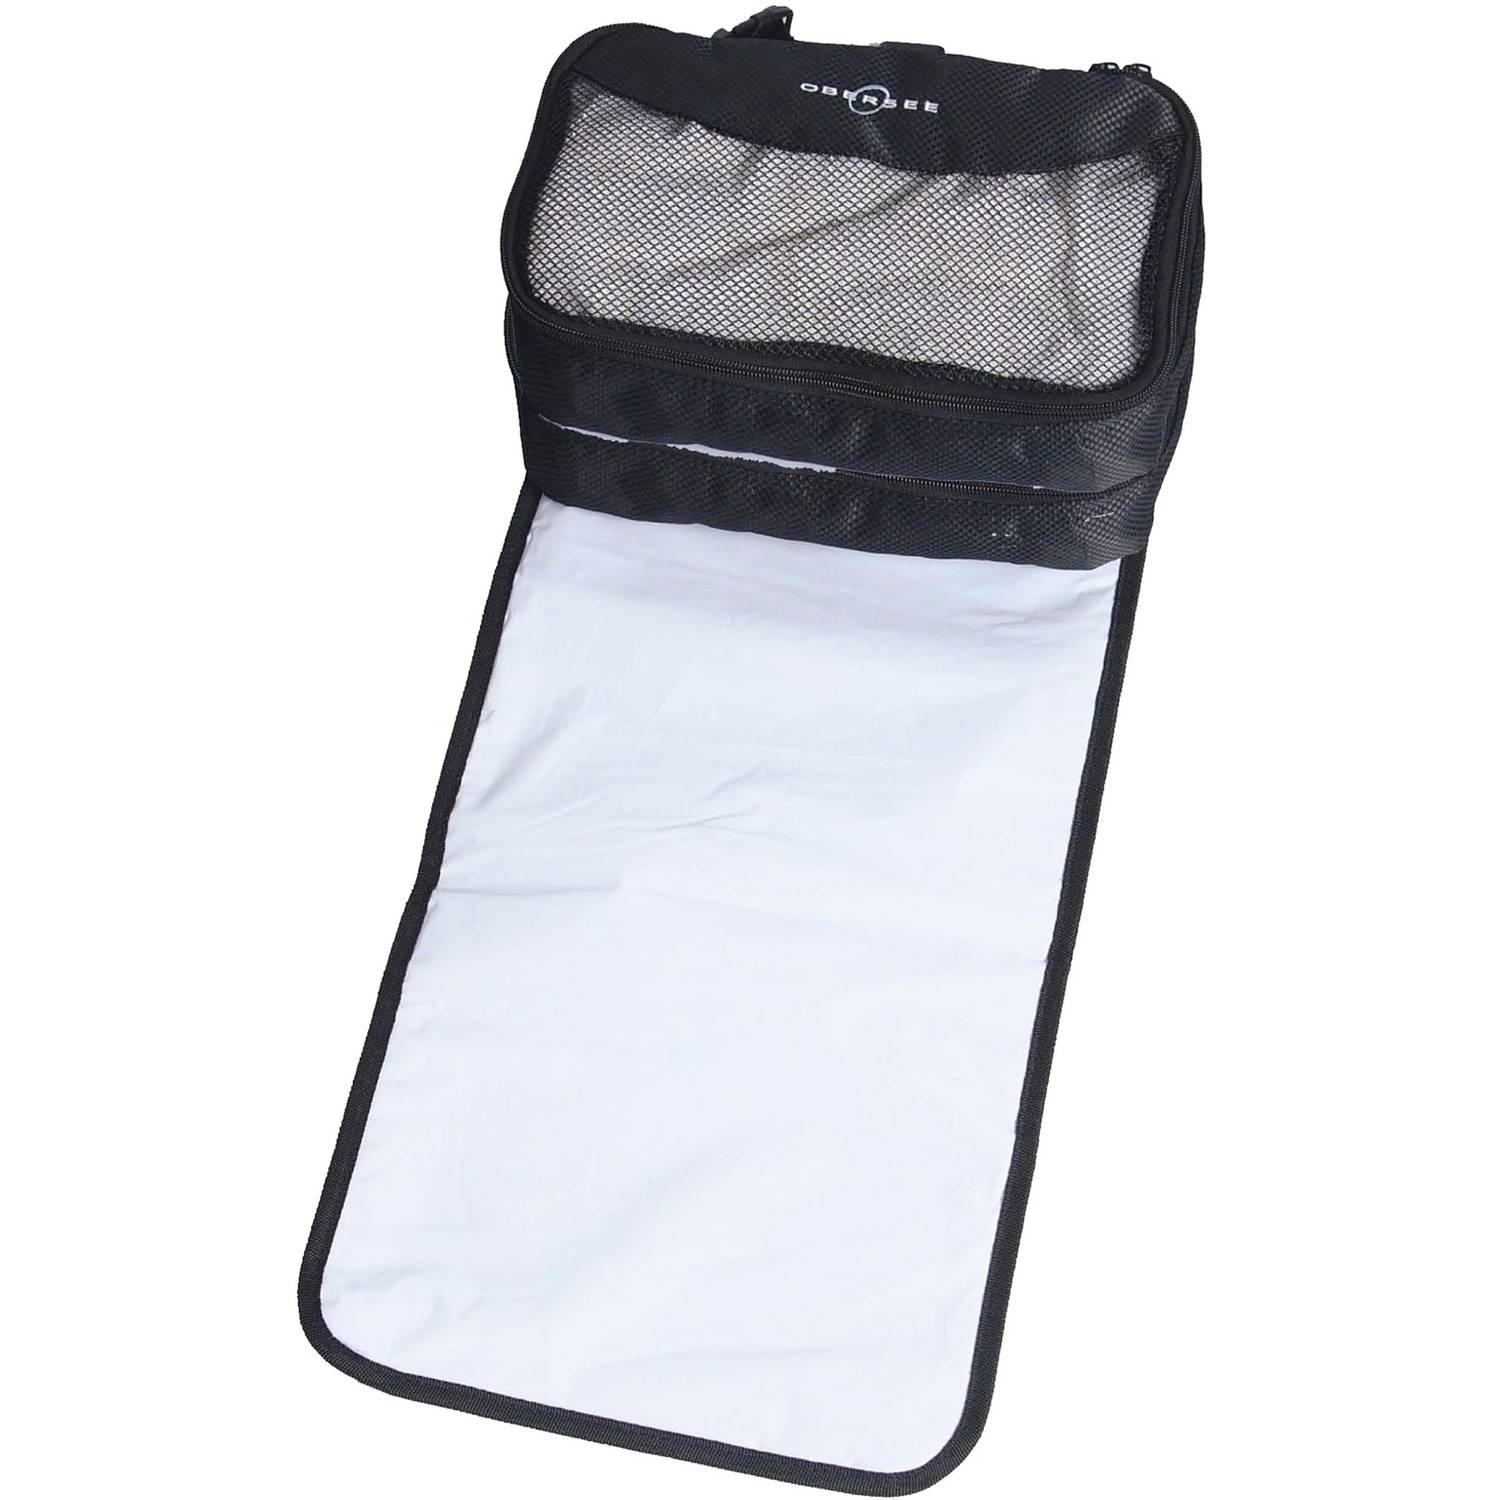 Obersee Extra Large Diaper Changing Station Bag for Travel and Twins